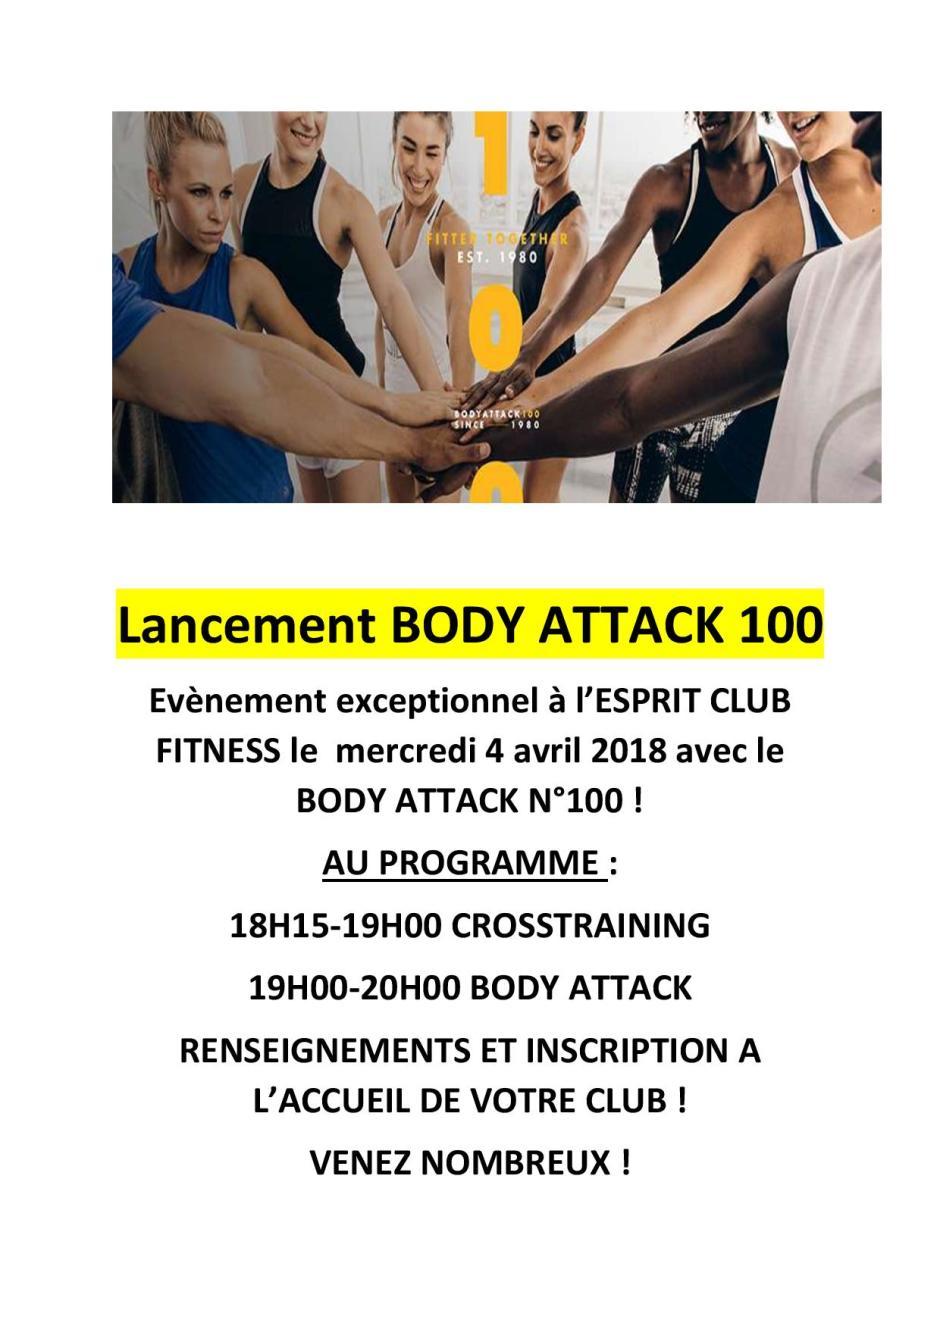 lancement-body-attack-100-page-001